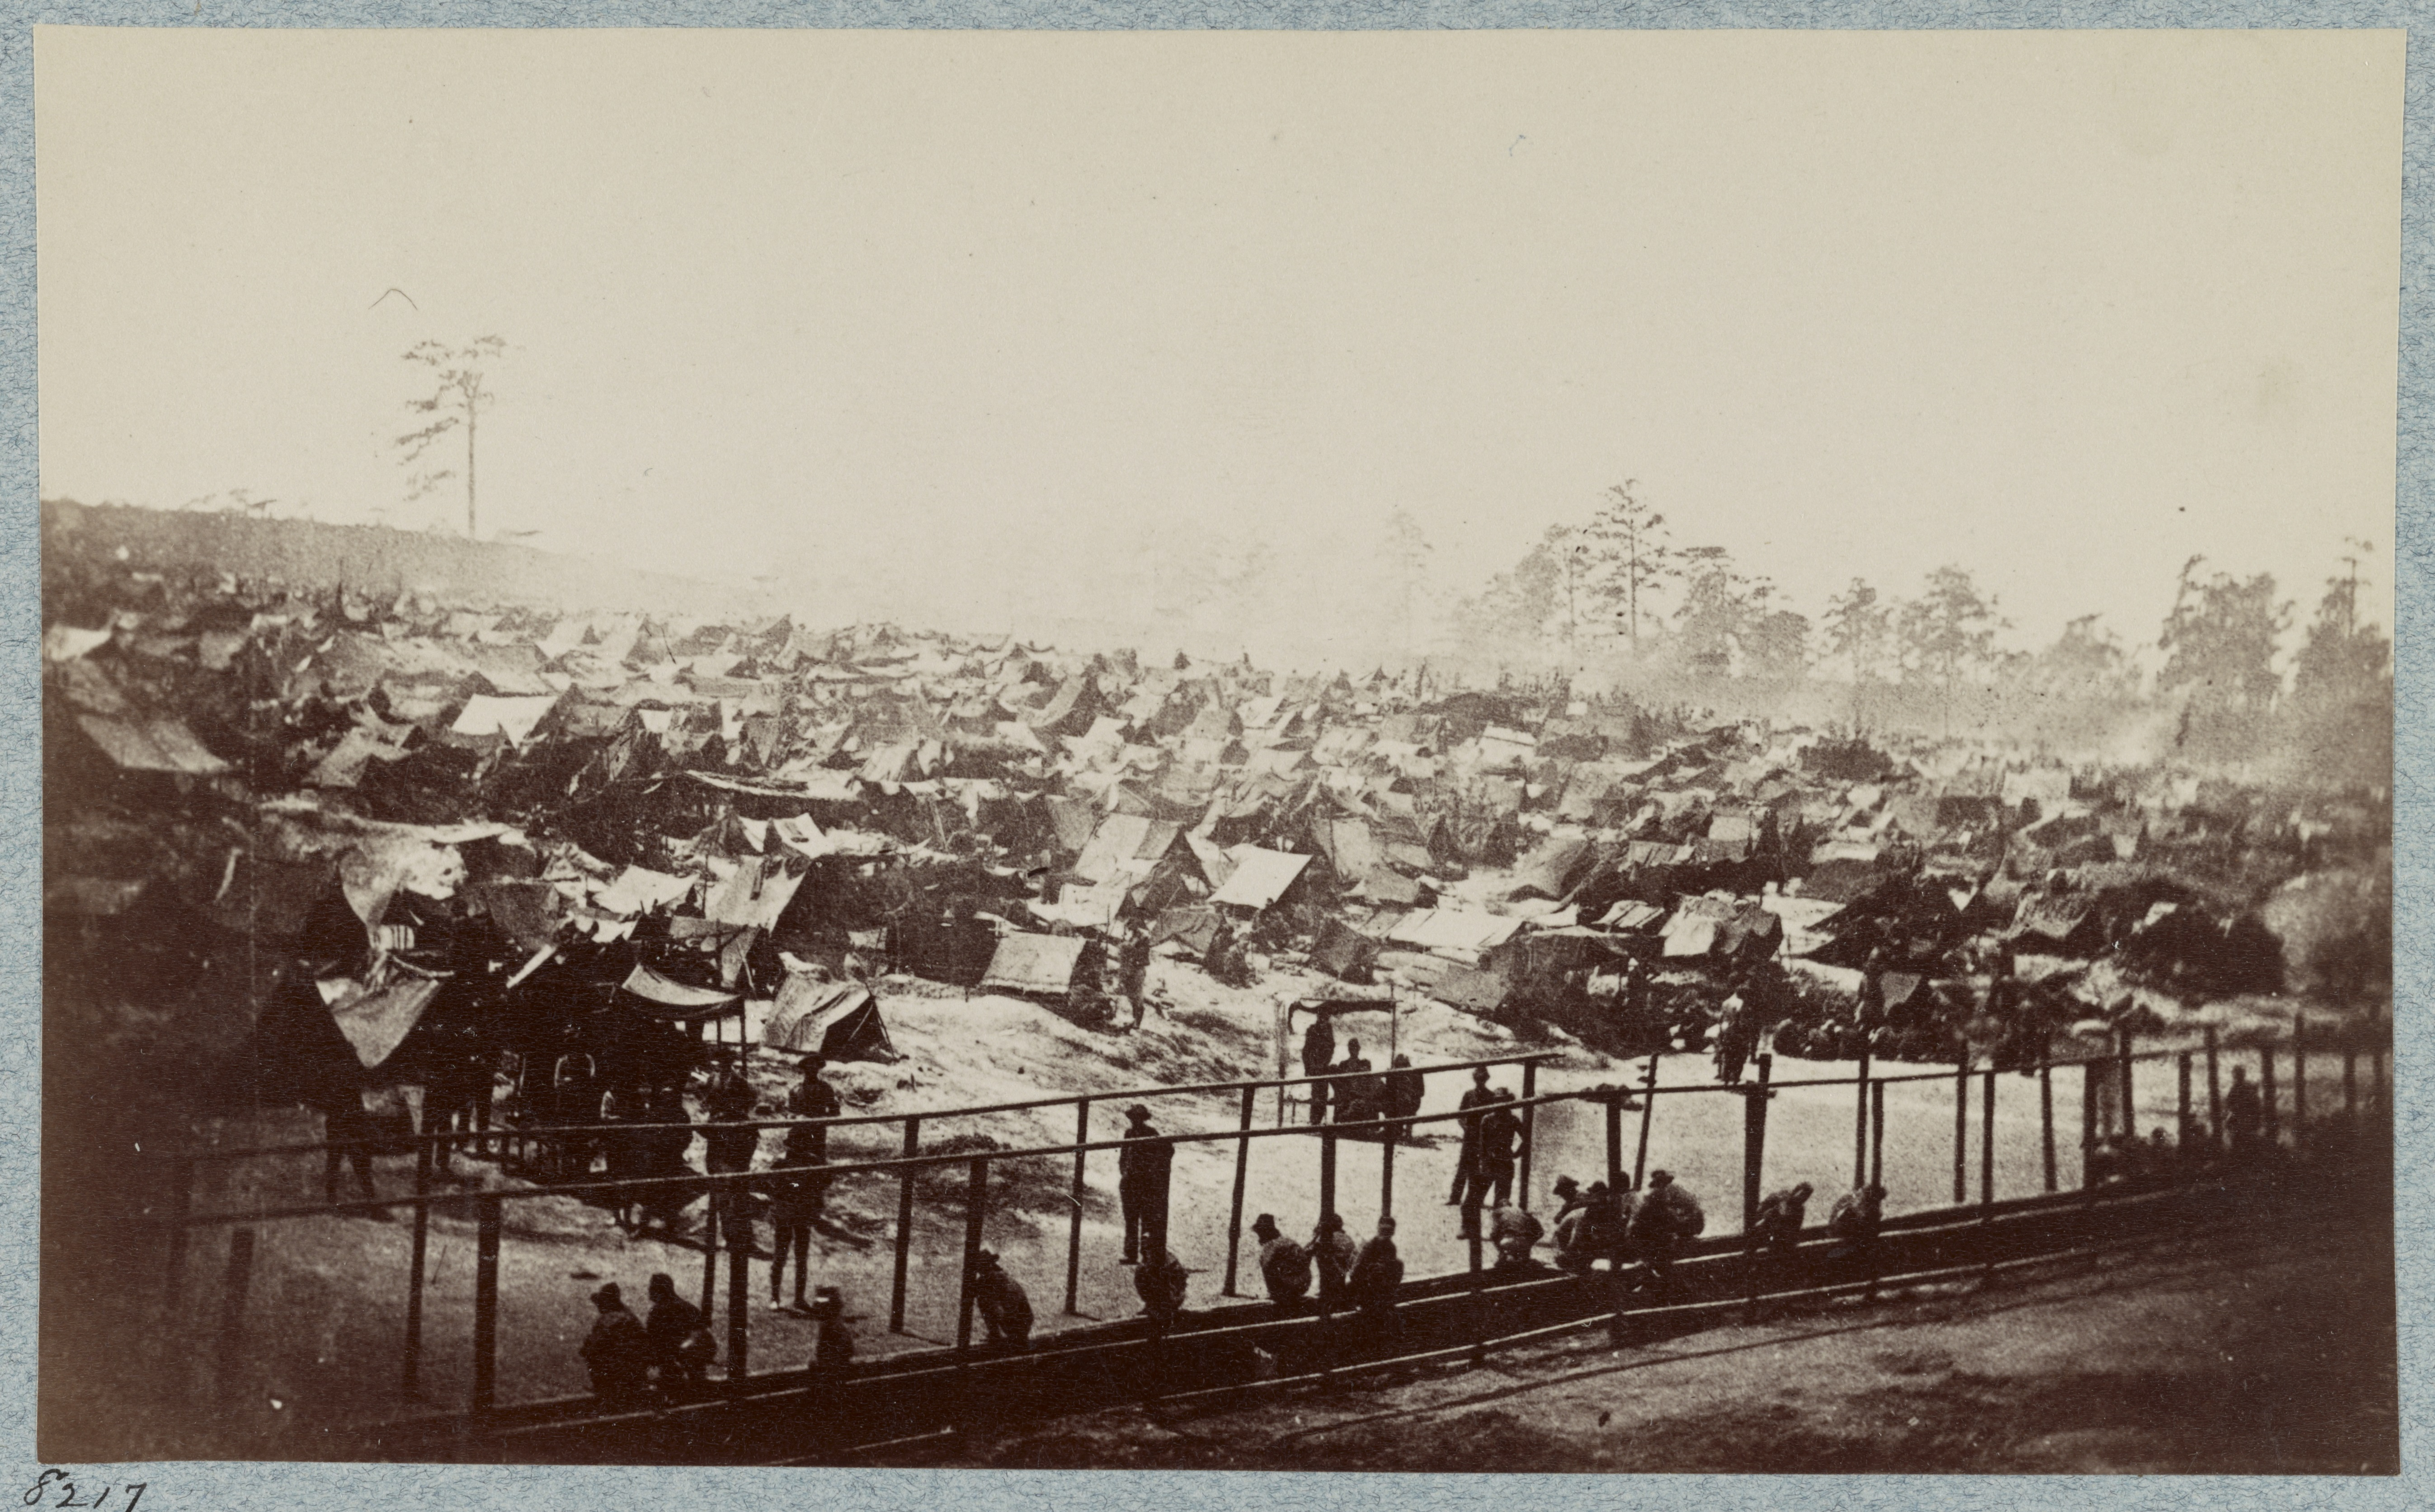 When Andrew J. Riddle photographed the prison in 1864, more than 33,000 prisoners were held on 26 acres. Library of Congress